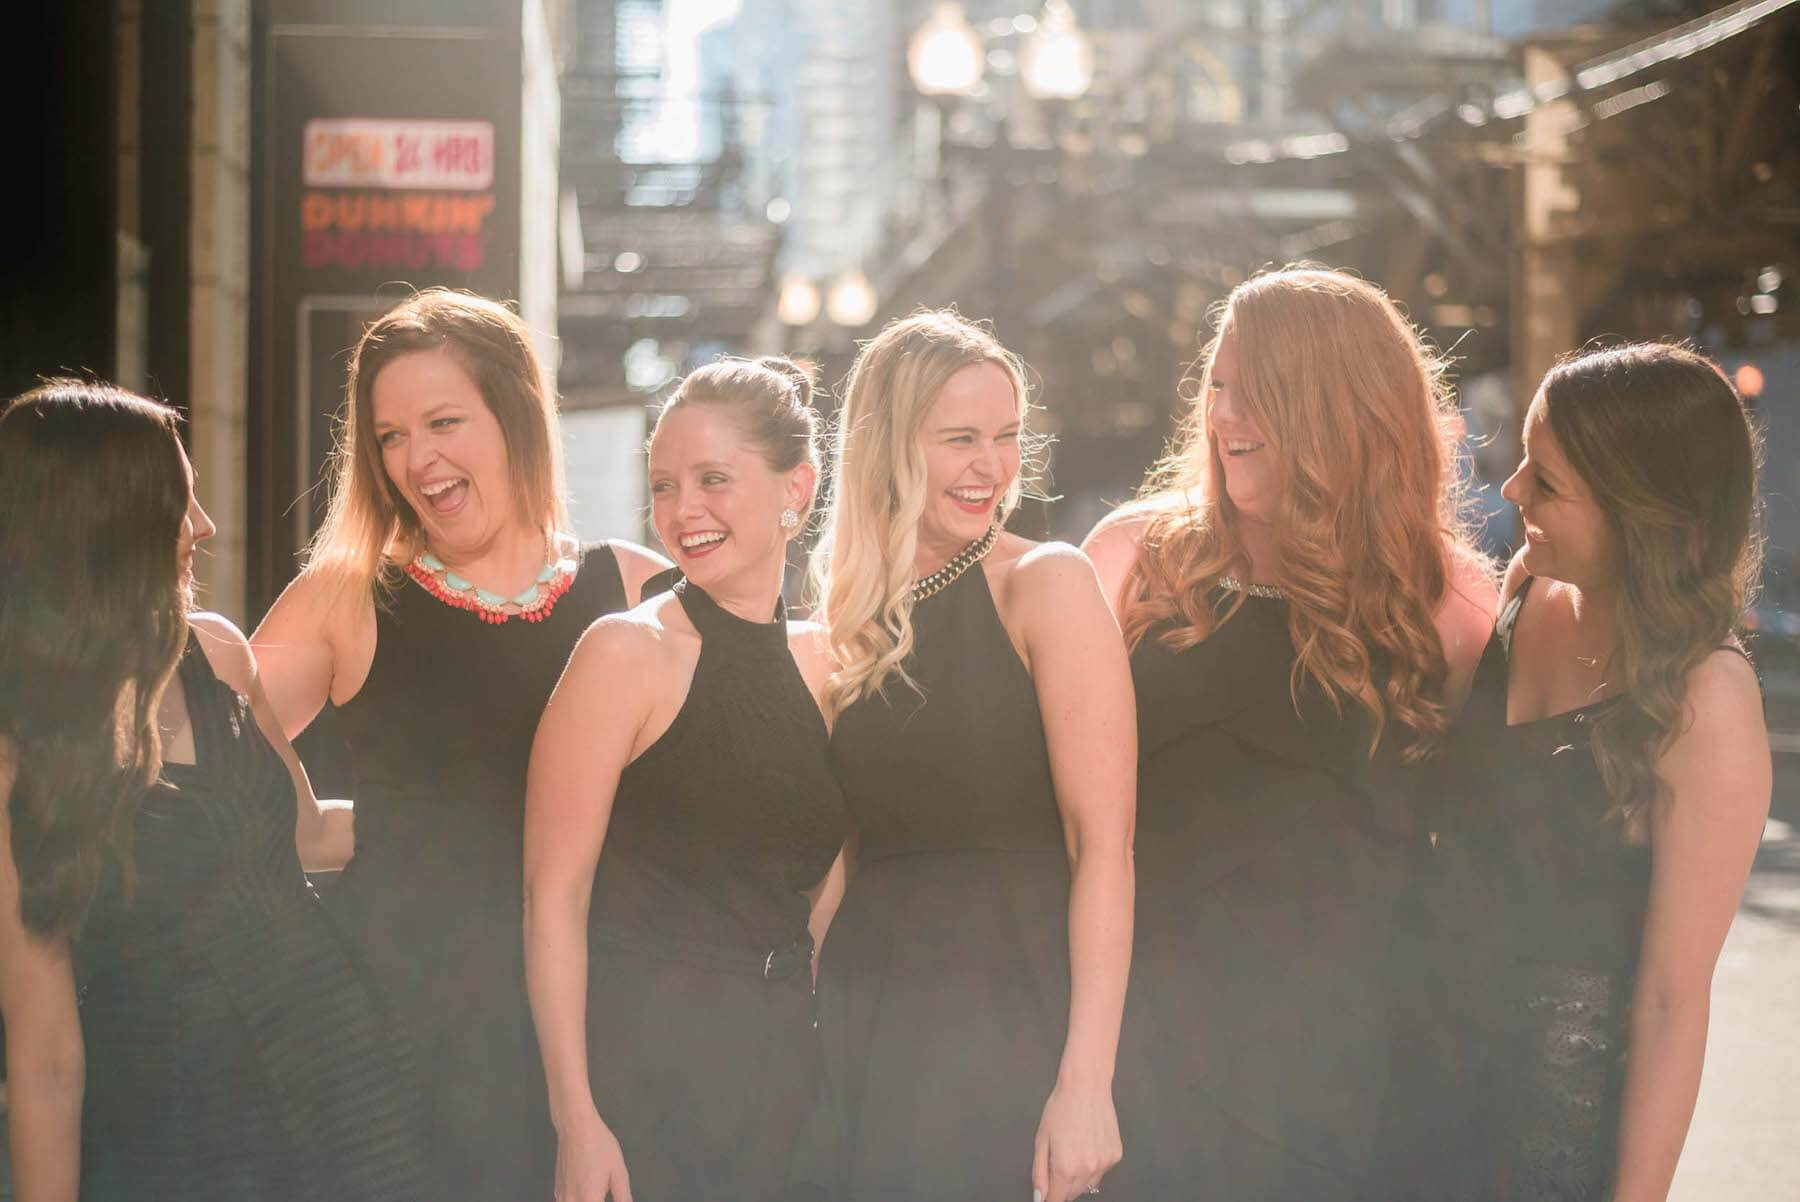 Six female friends standing together laughing with one another on a bachelorette trip in Chicago, USA